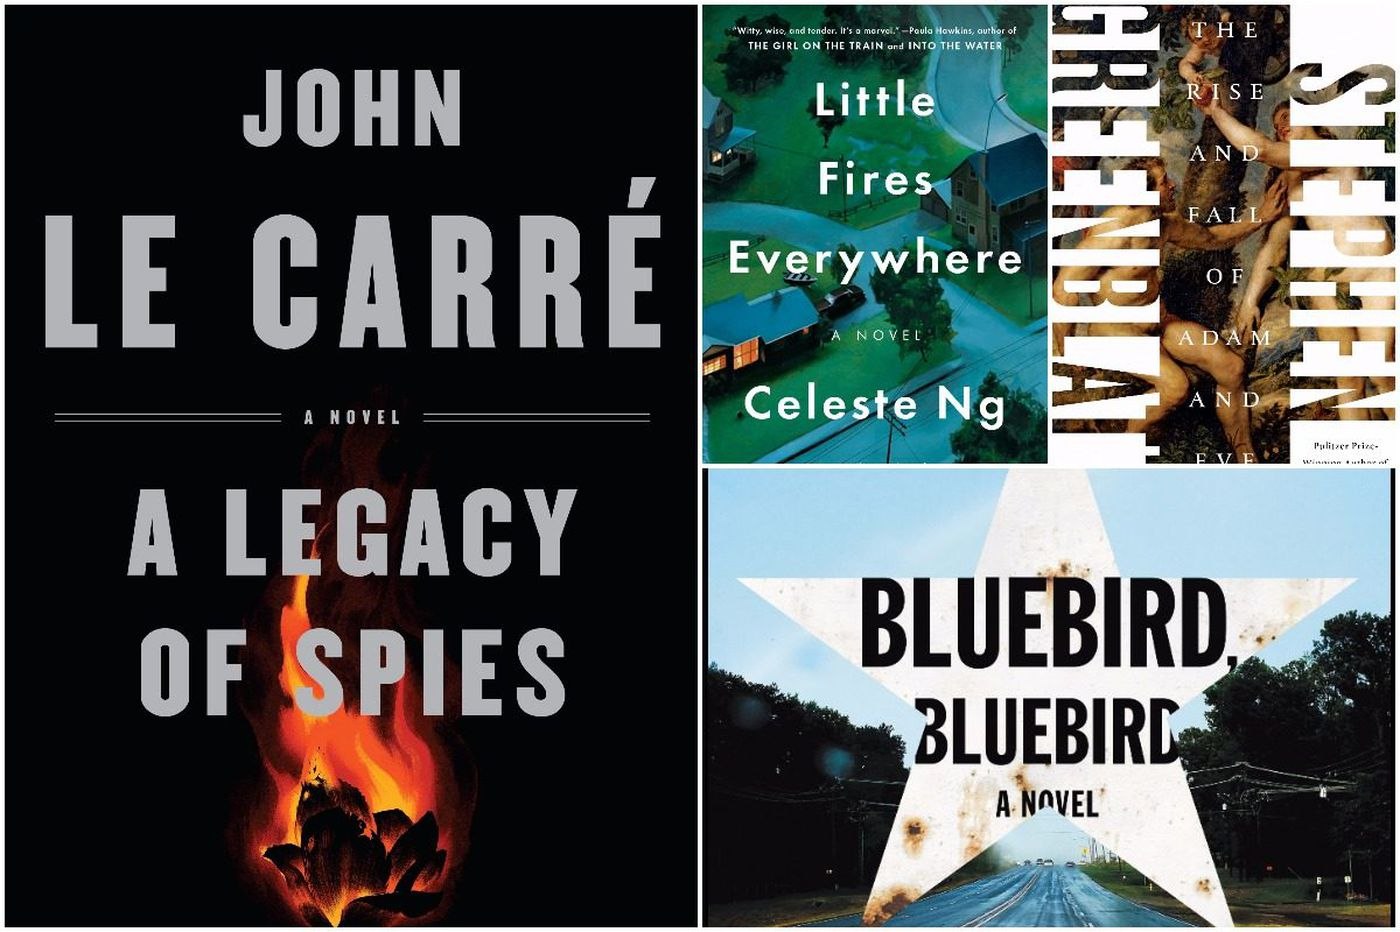 Fall's big books: From Le Carré, Ward, Egan, Maynard, Ng … and Tom Hanks?